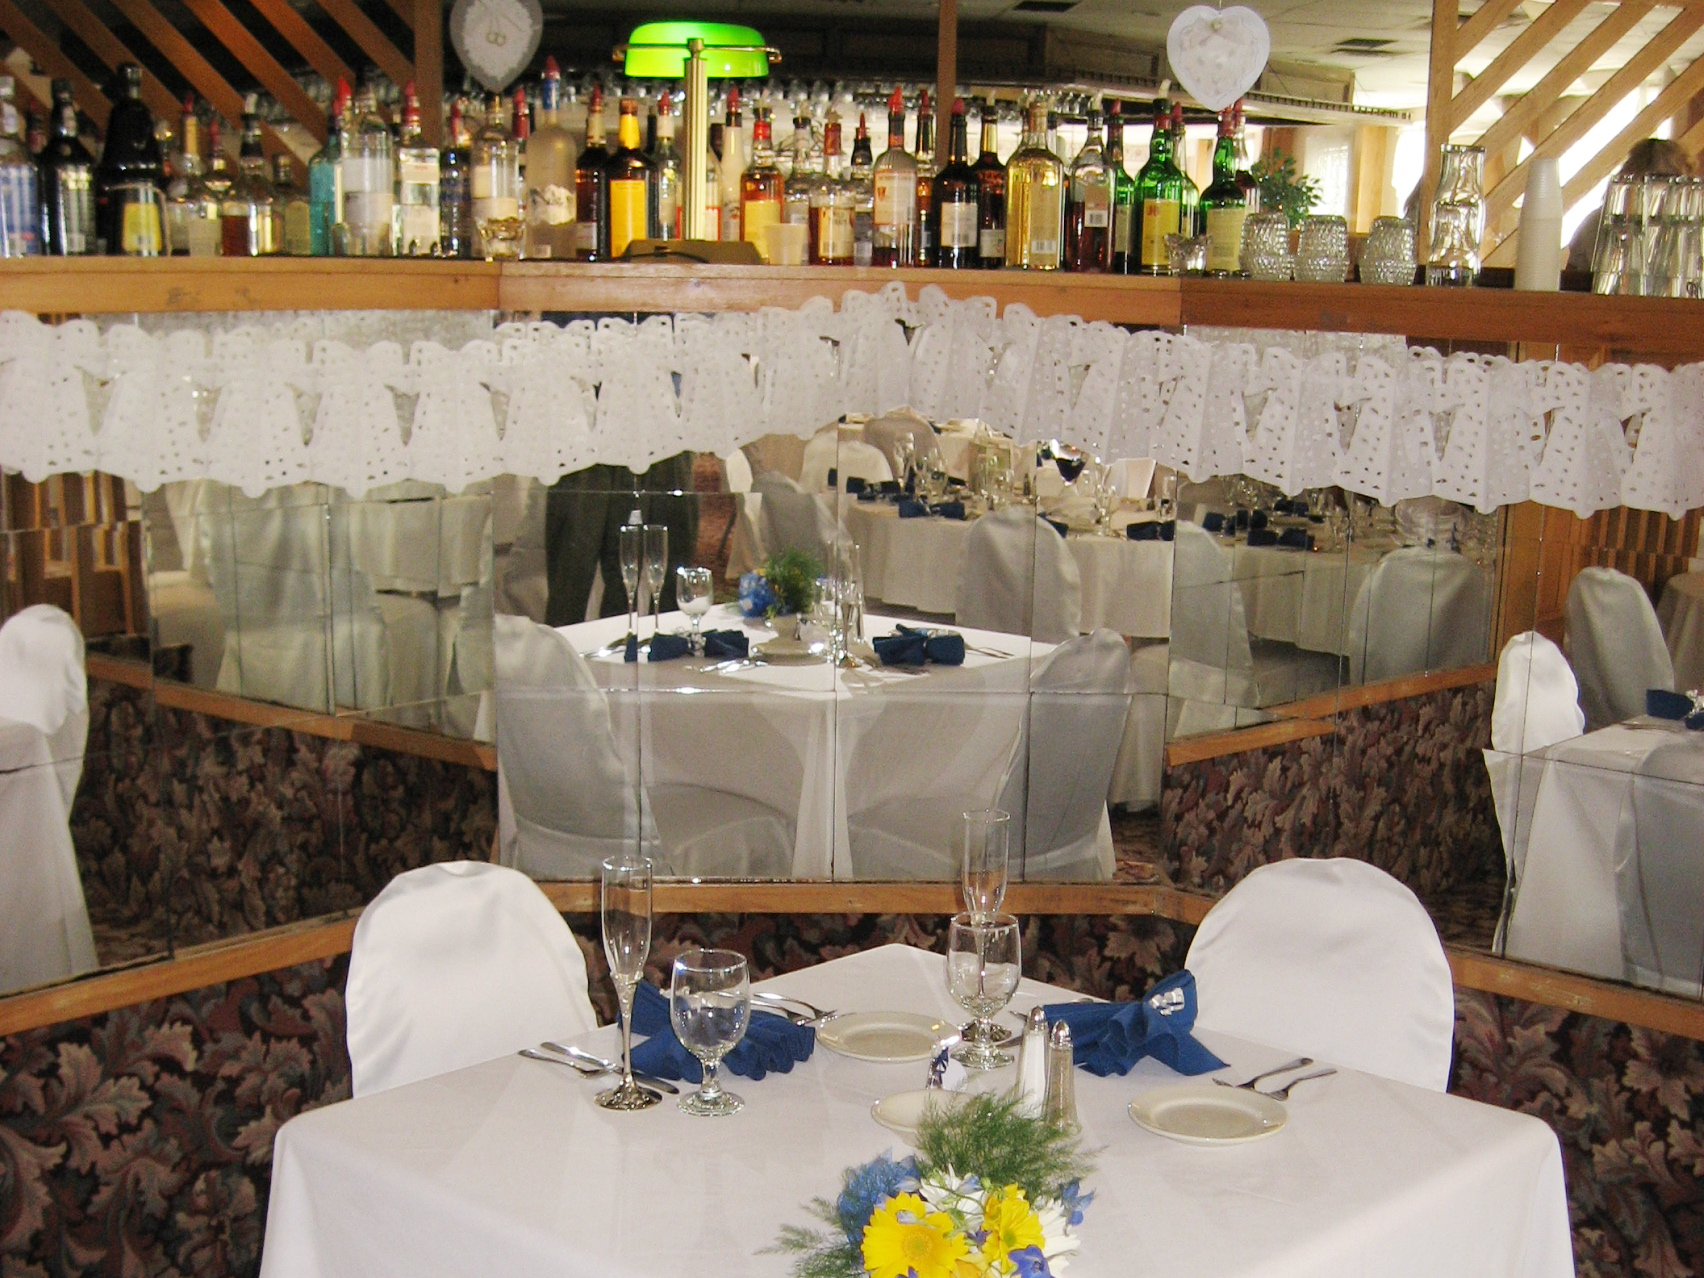 An Elegant Banquet Set-up at the Fireside Inn Auburn